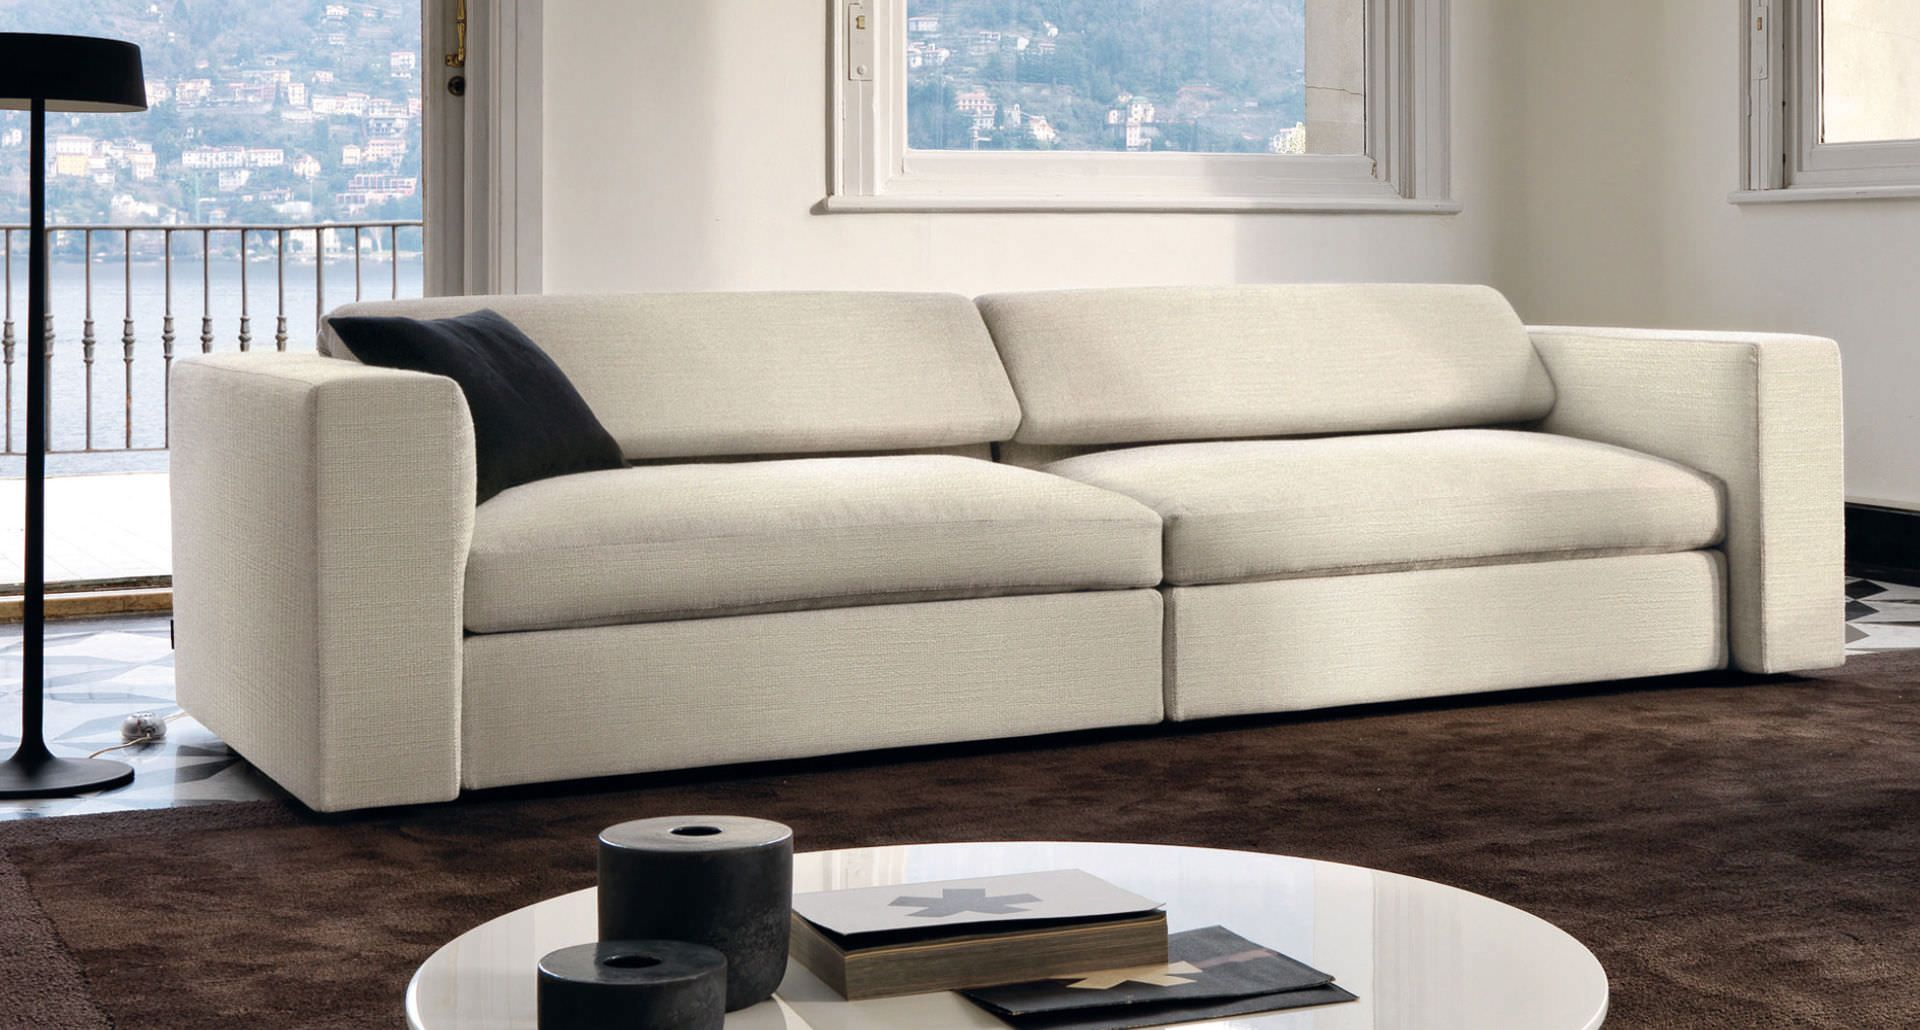 Top 10 Best Reclining Sofa Sets (Ultimate Buying Guide) Living Room, Modern,